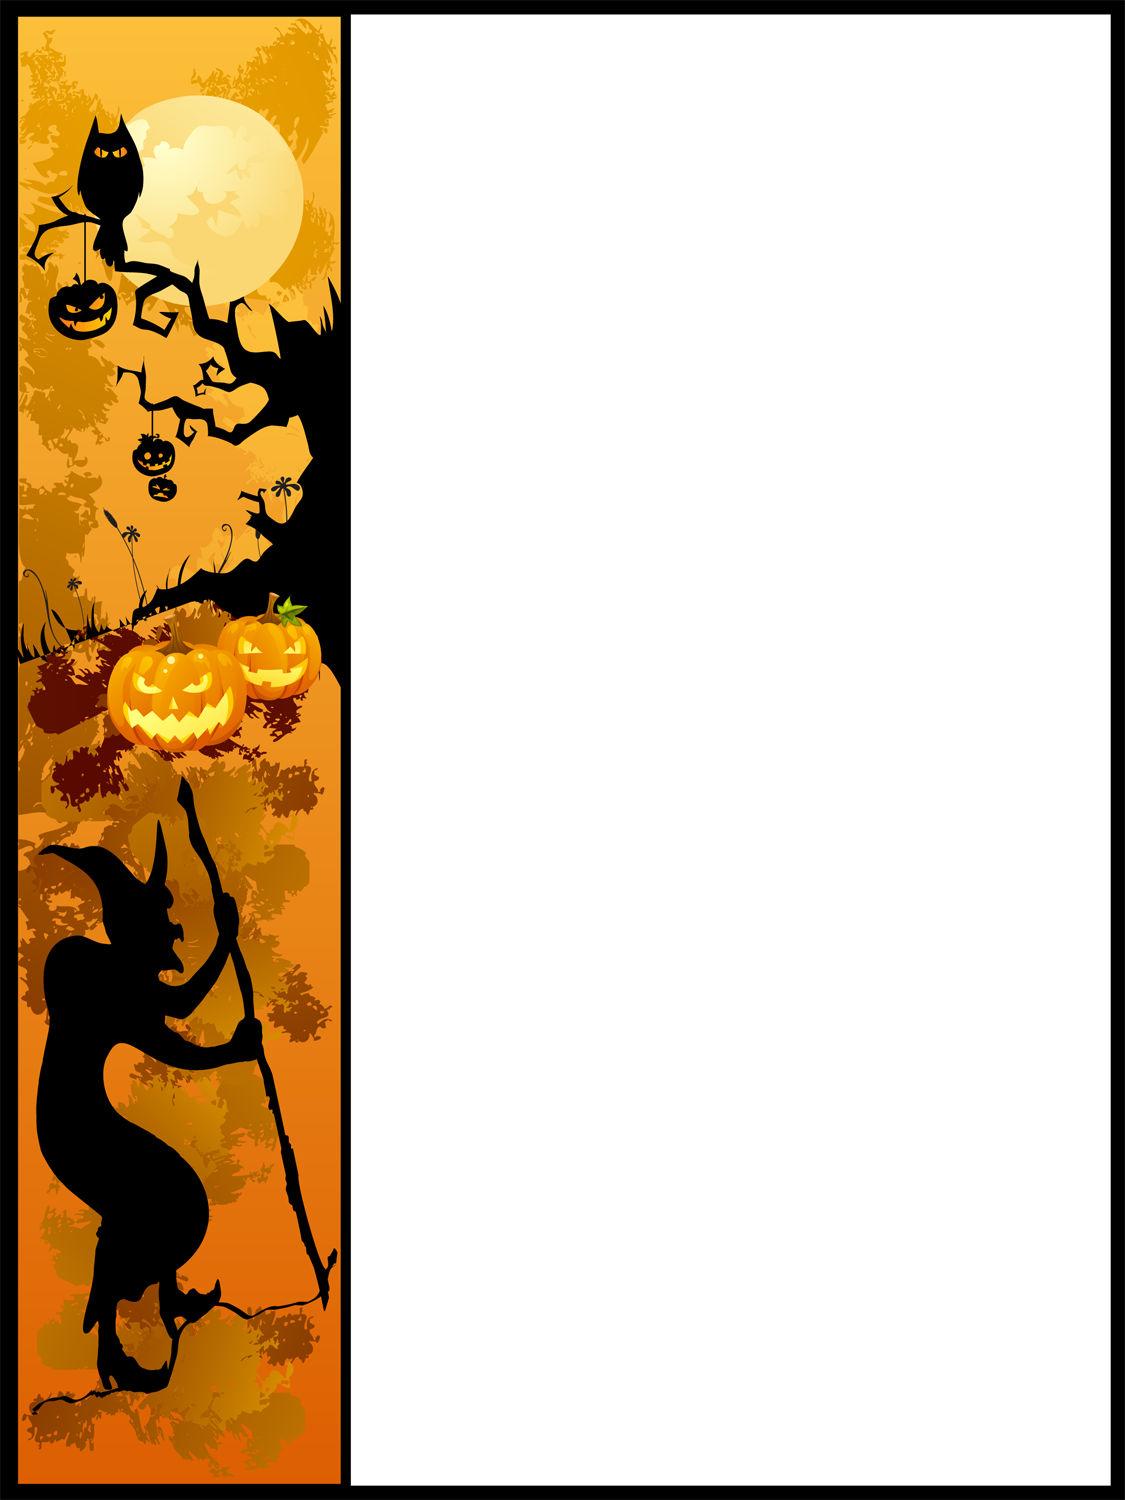 1125x1500 Halloween Borders Clip Art Free amp Look At Halloween Borders Clip